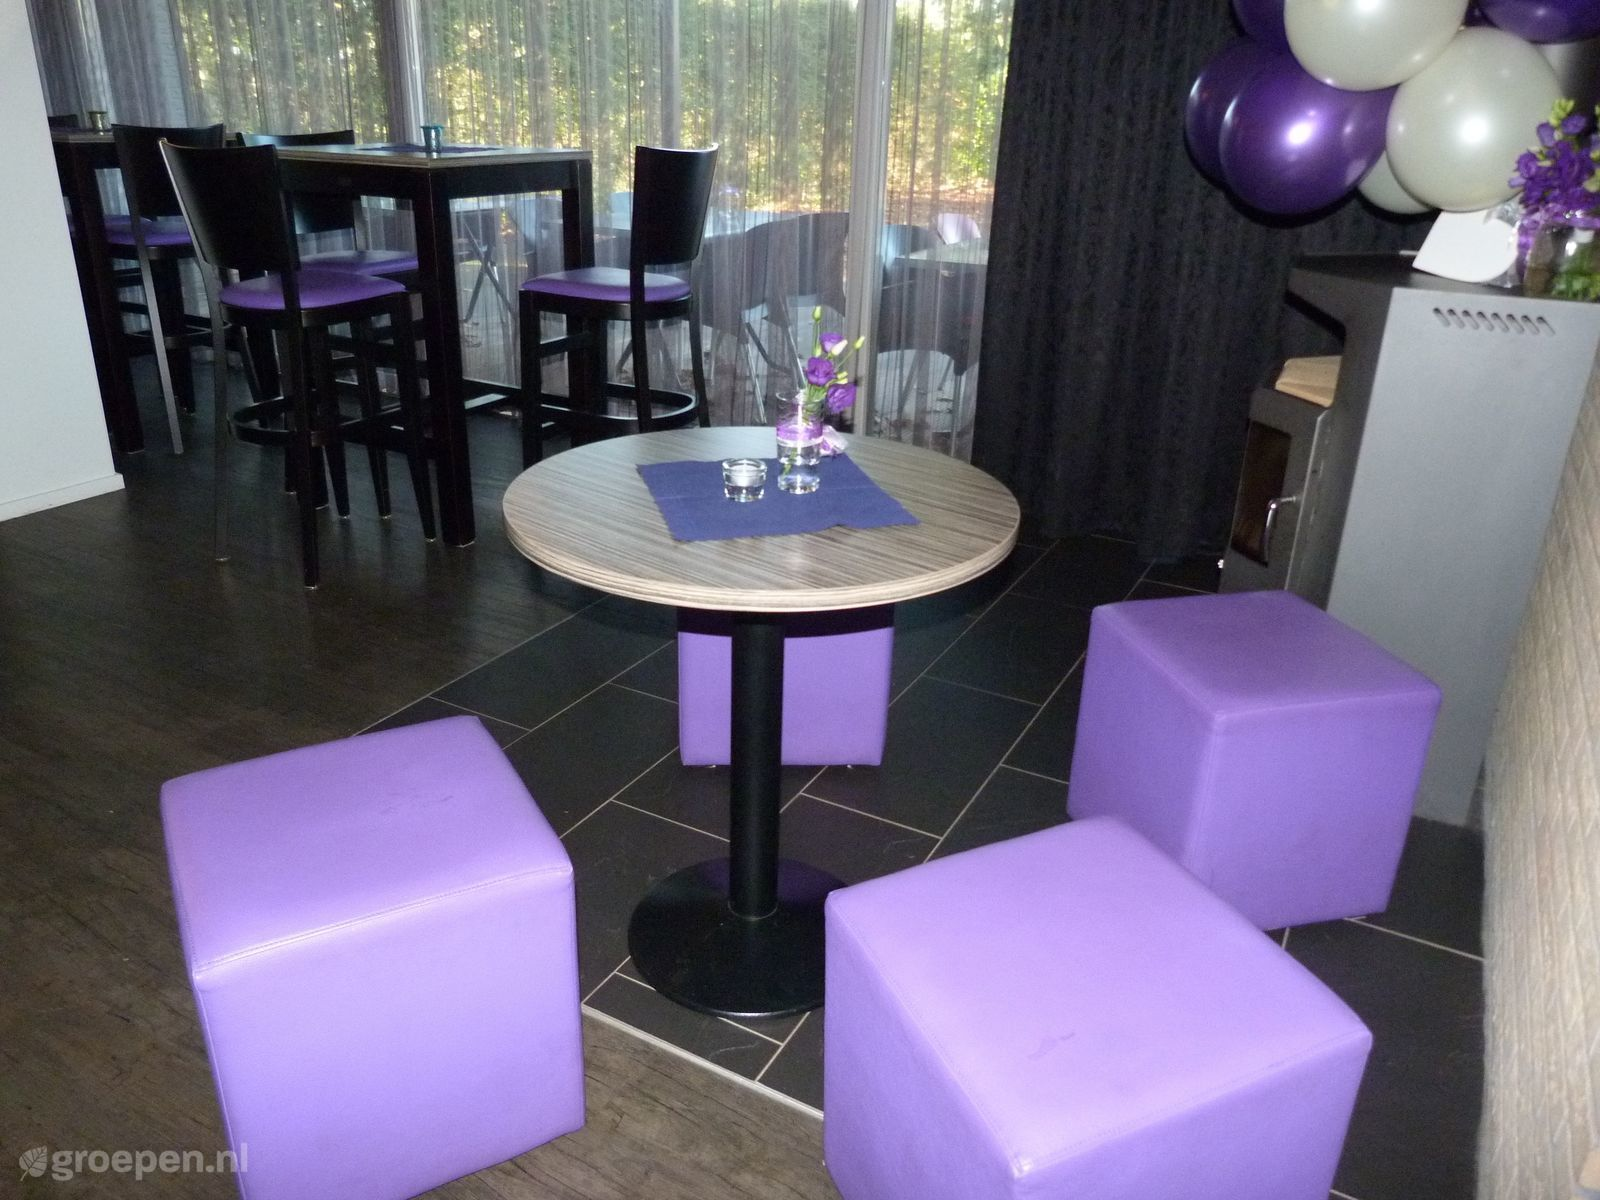 Group accommodation Putten